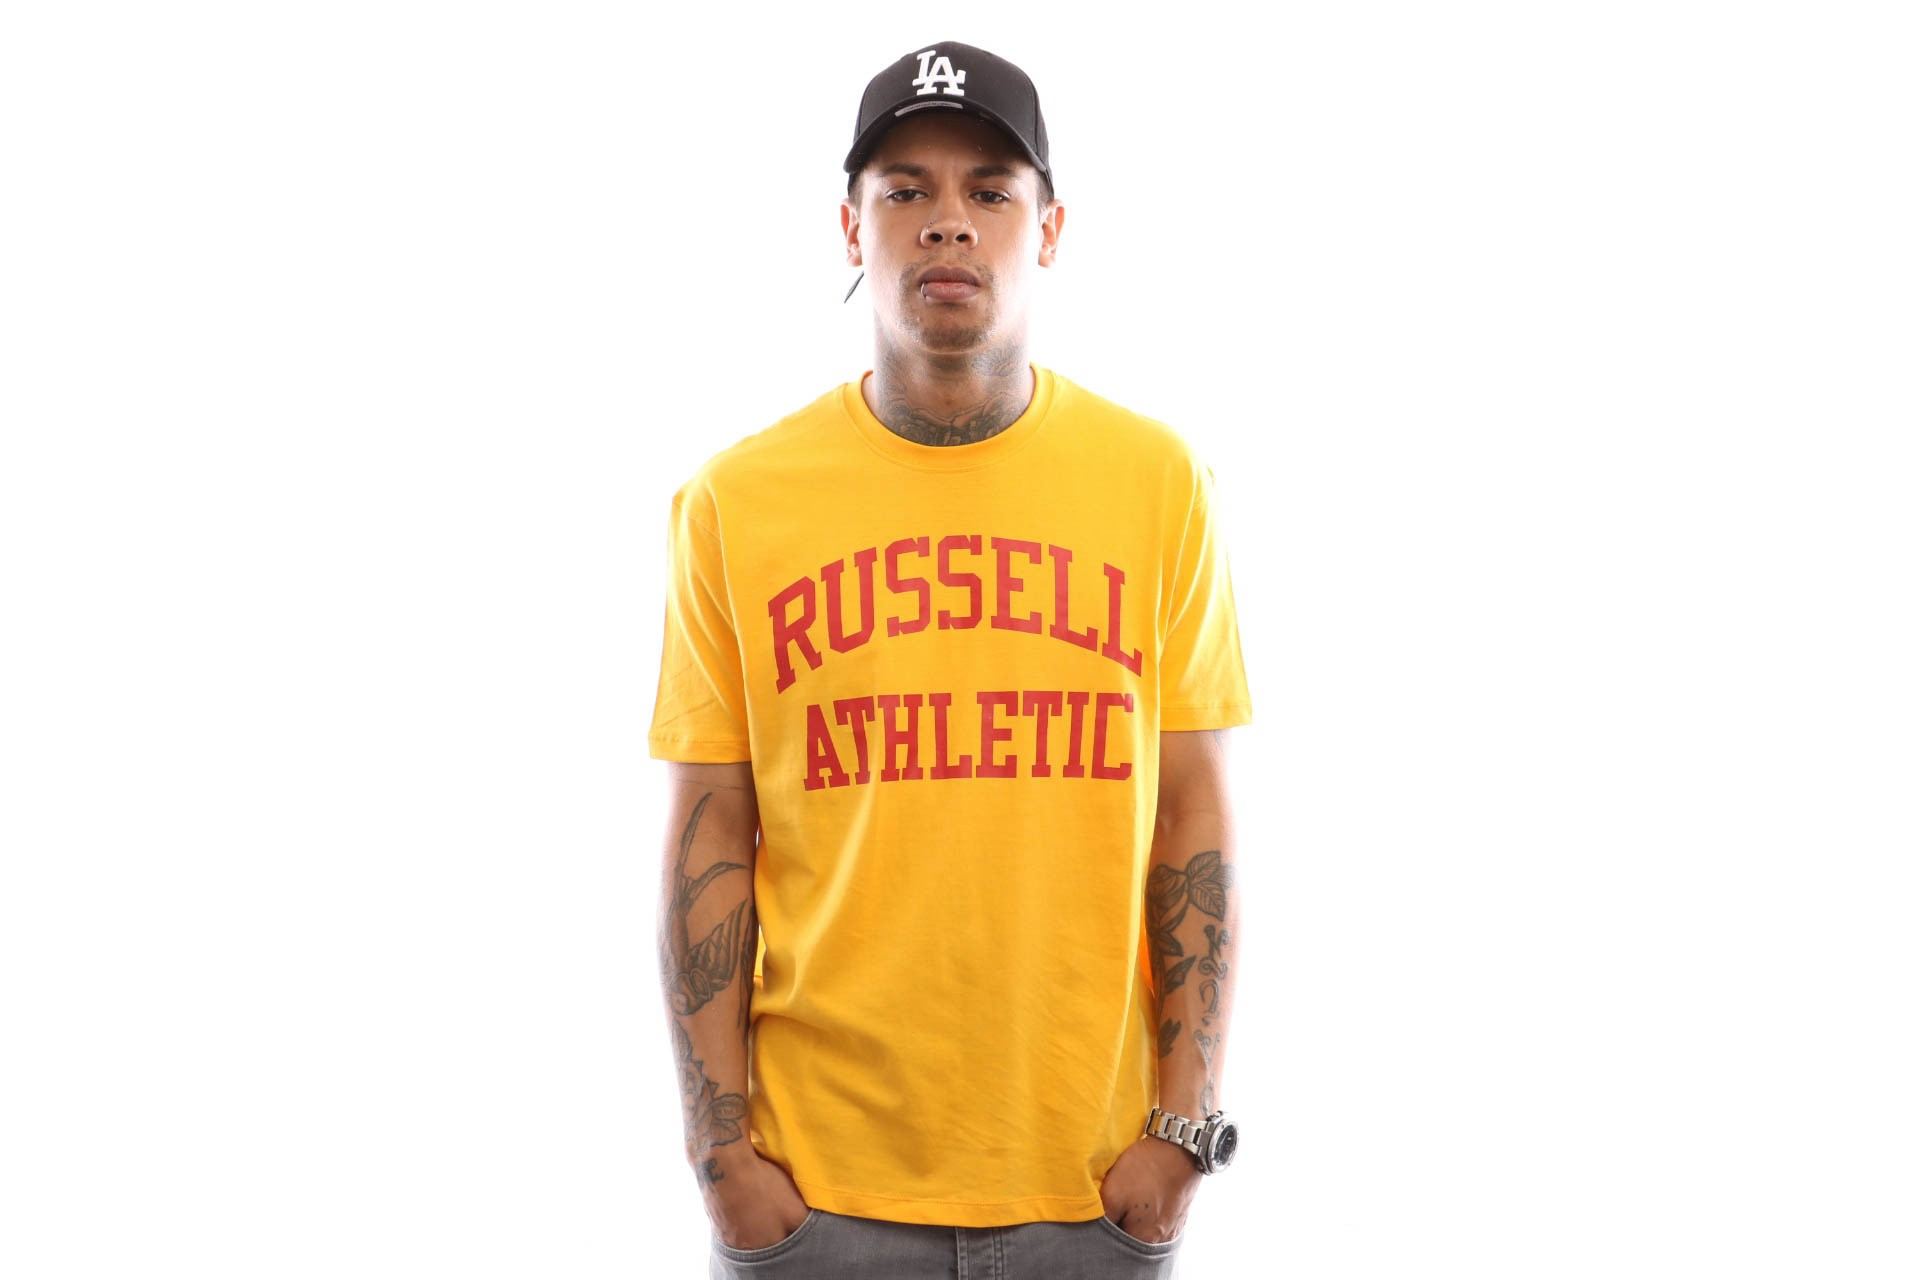 Russell Athletic Iconic Short Sleeve A9-002-1 T Shirt Gold Fusin